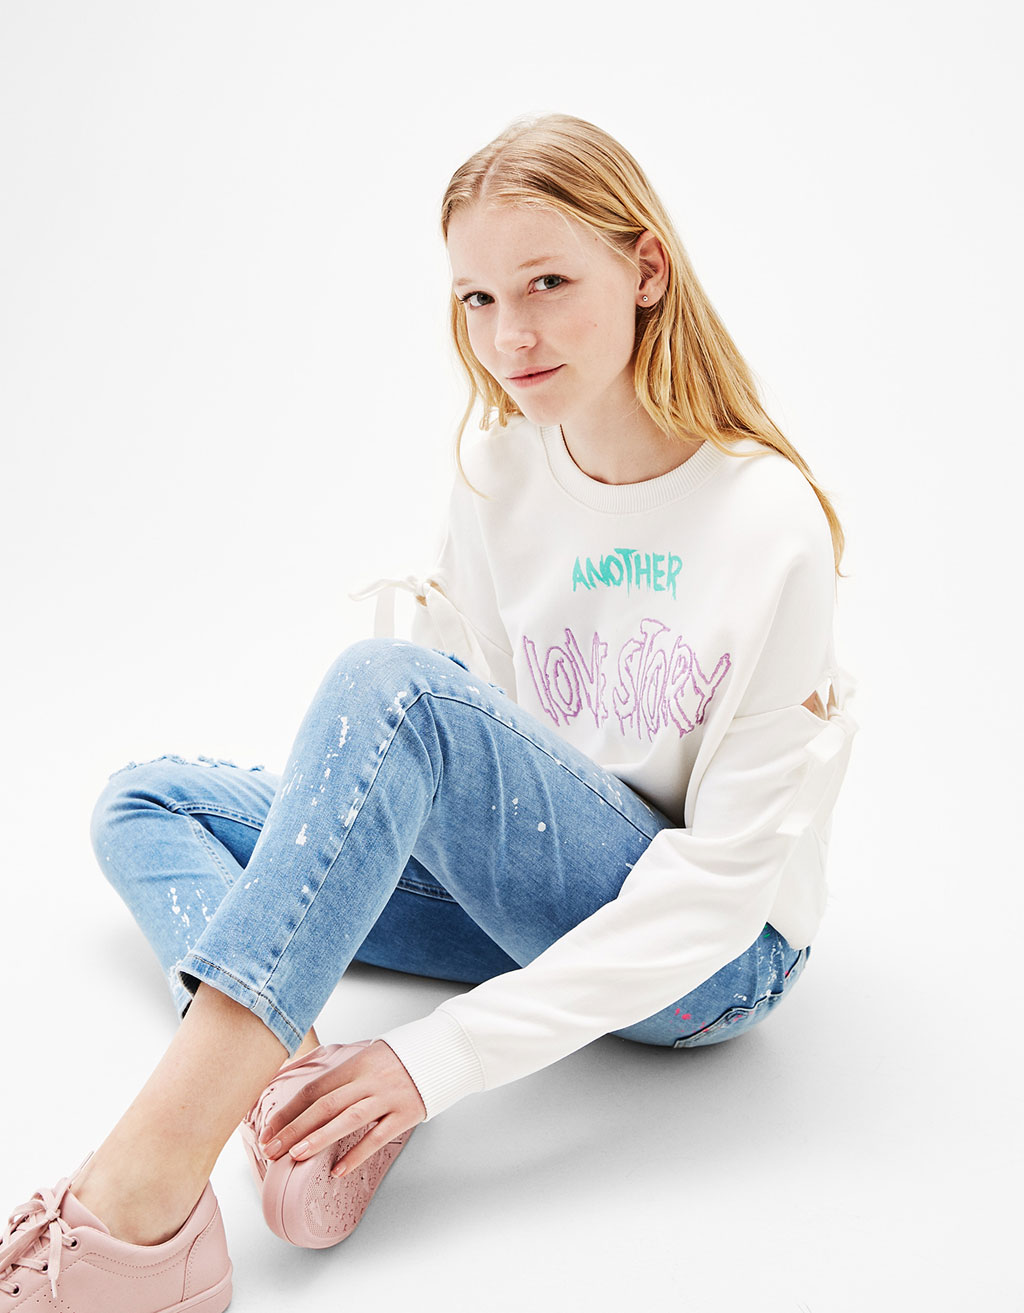 Off-shoulder sweatshirt with embroidered text